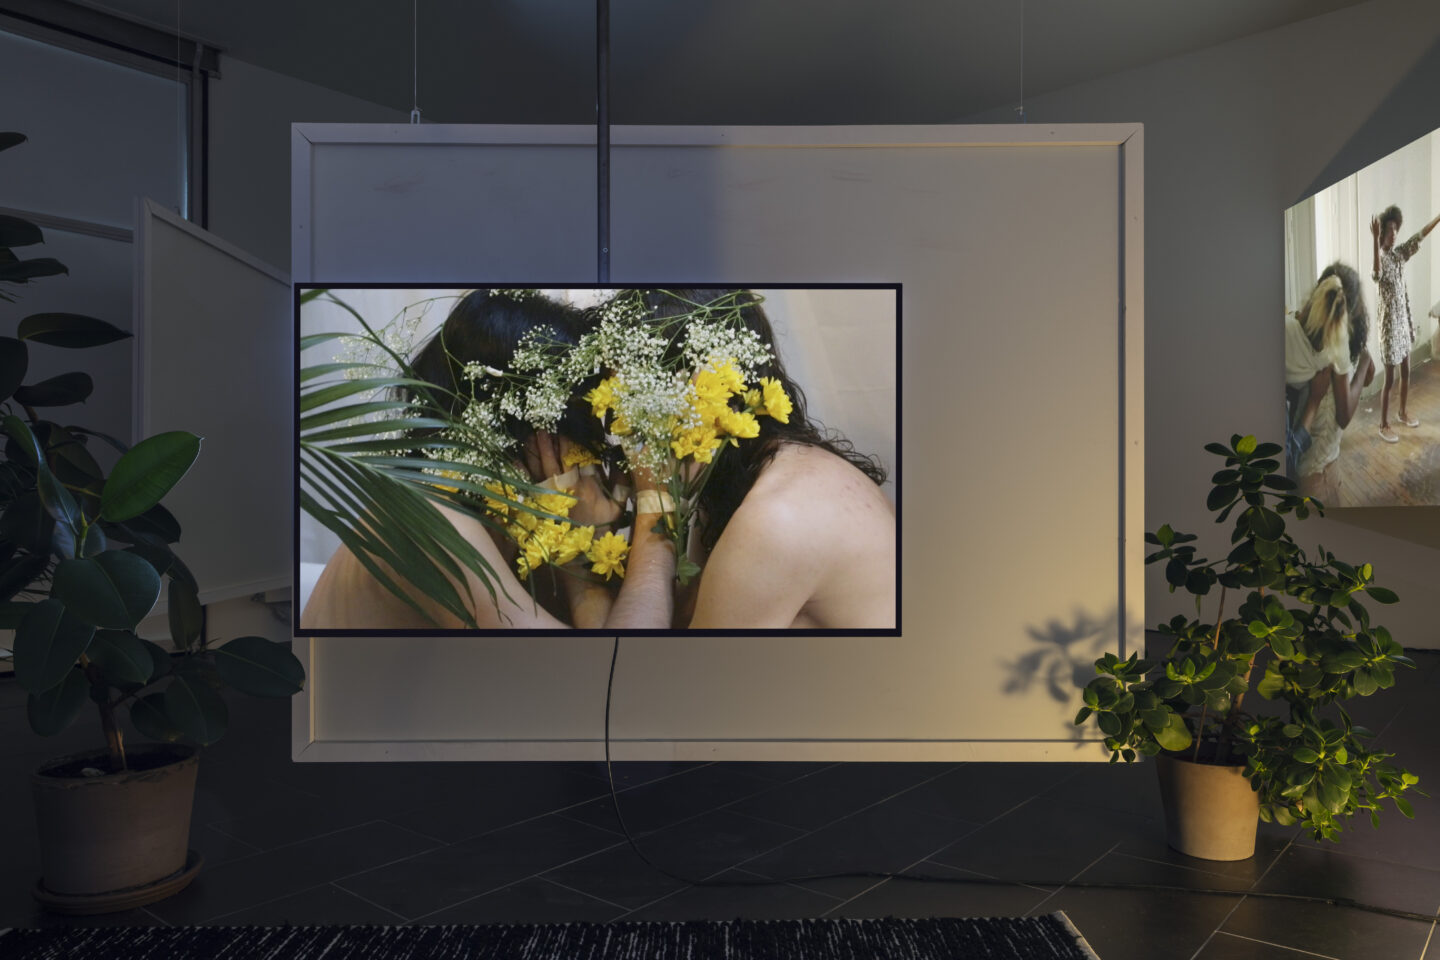 Exhibition View Groupshow «On Fire – Vulnerable Footage ; view on Melanie Bonajo, Night Soil - Economy of Love (2015)» at SALTS, Birsefelden, Basel, 2019 / Photo: Gunnar Meier / Courtesy: the artist, AKINCI, Basler Dokumentartage and SALTS